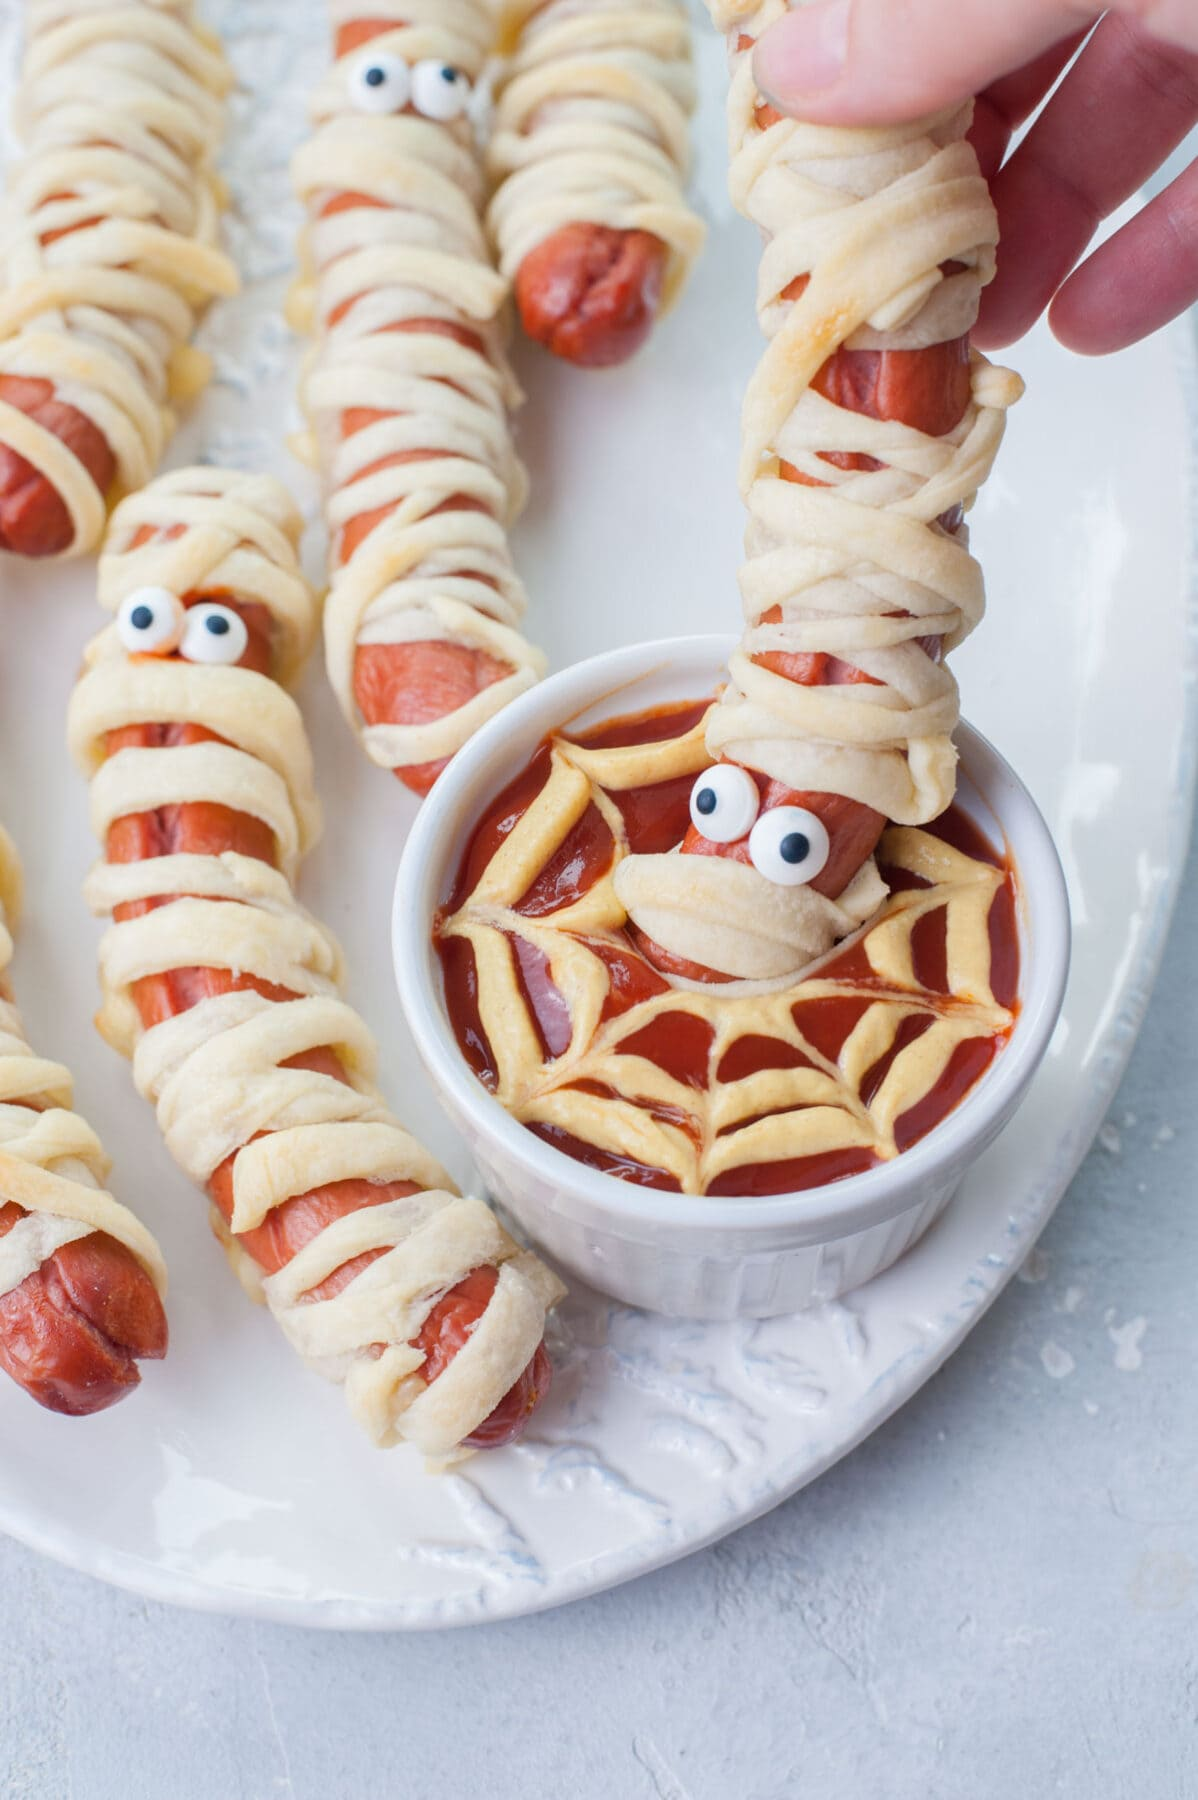 A mummy hot dog is being dipped in spider's web ketchup-mustard dip.